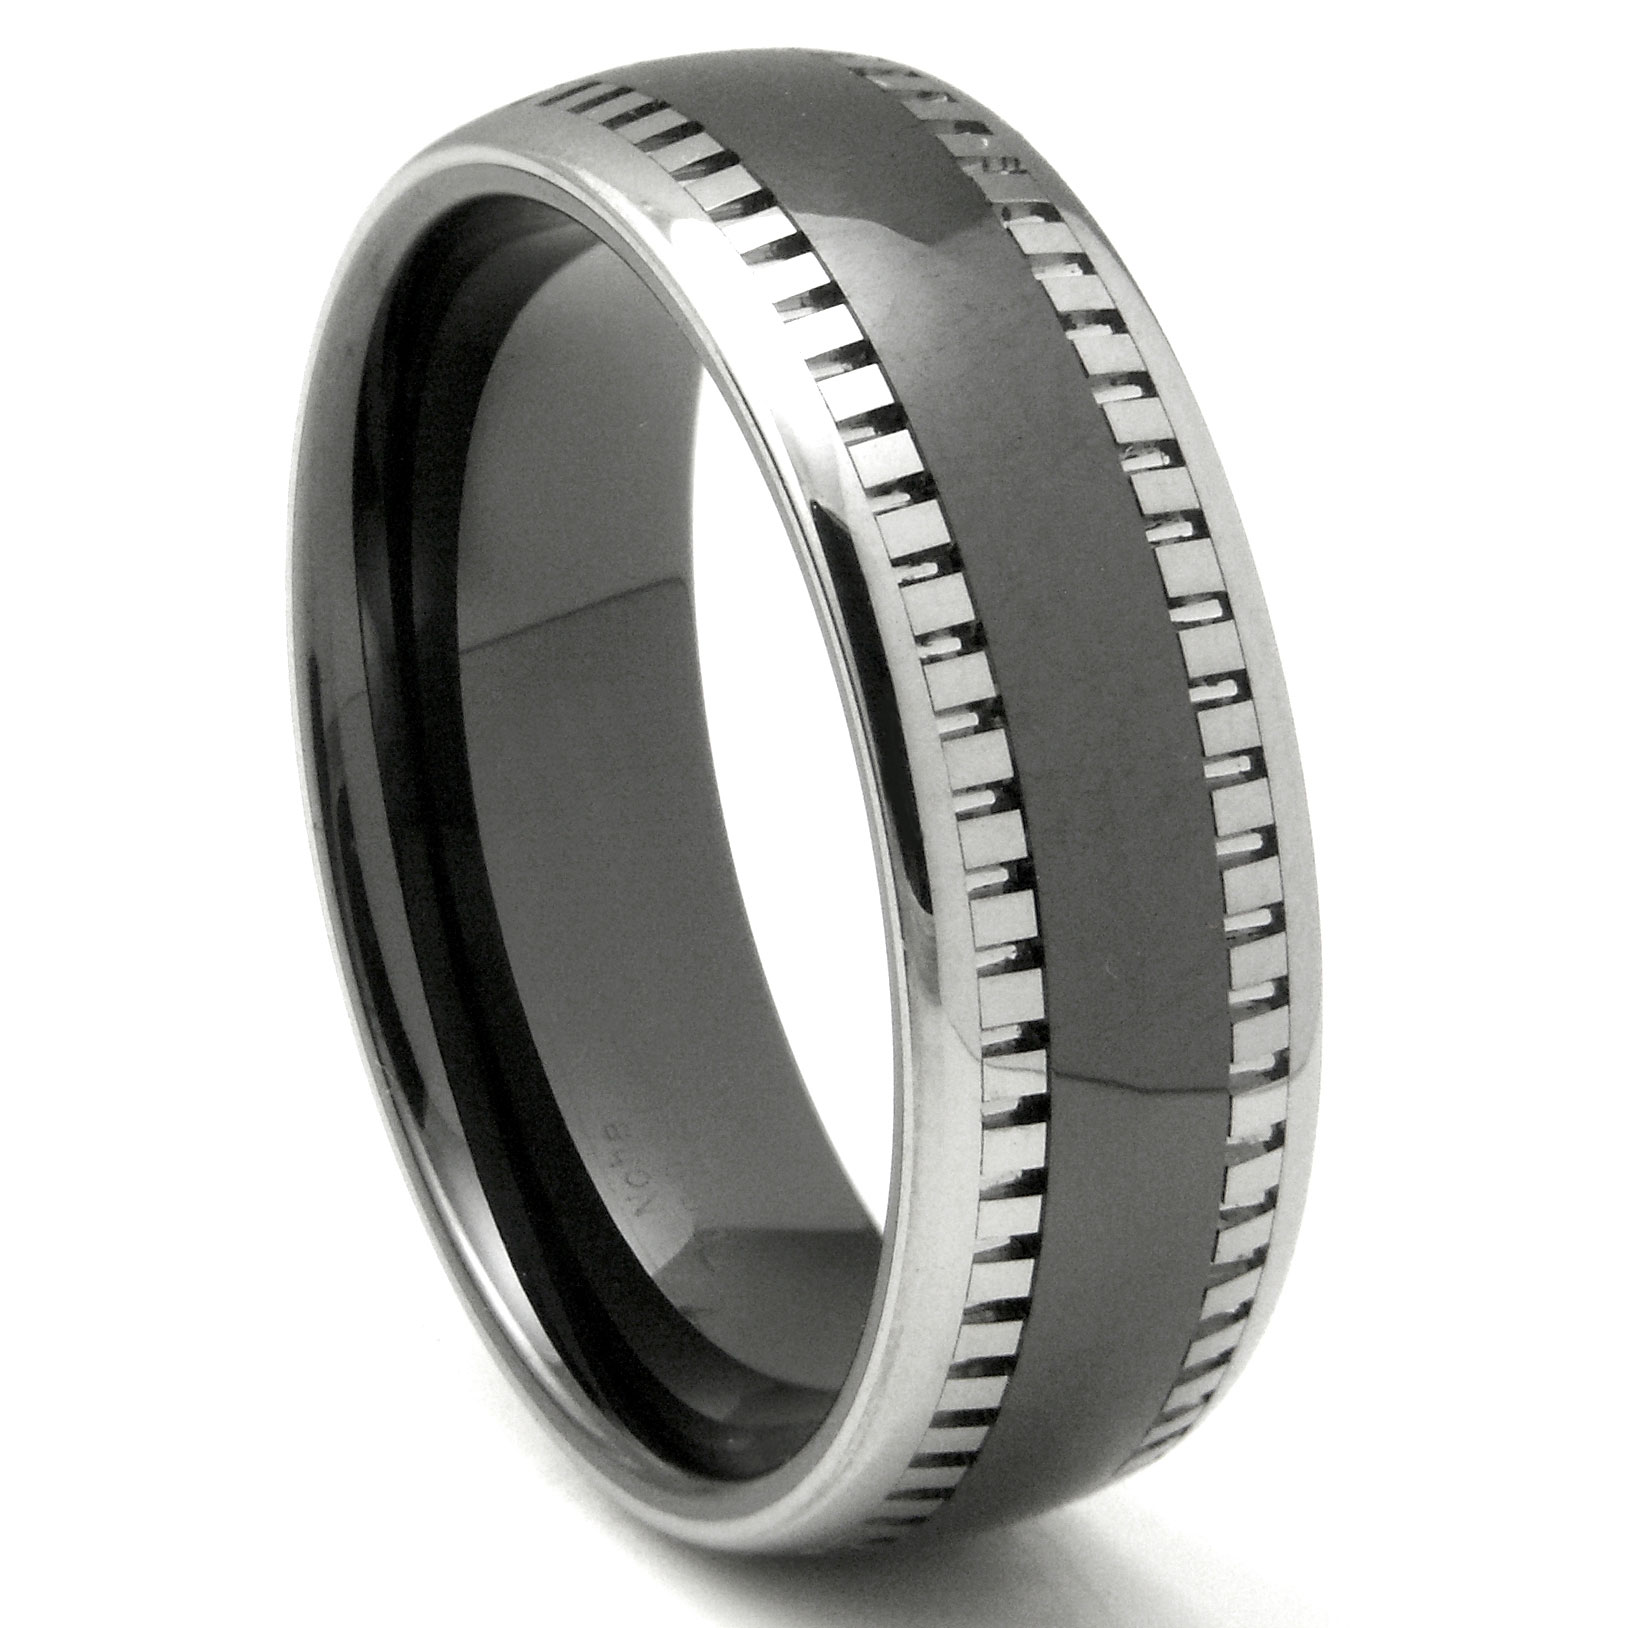 2nd Generation Tungsten Carbide Two Tone Milgrain Dome Wedding Band Ring P tungsten carbide wedding bands Home Men s Tungsten Carbide Rings Loading zoom